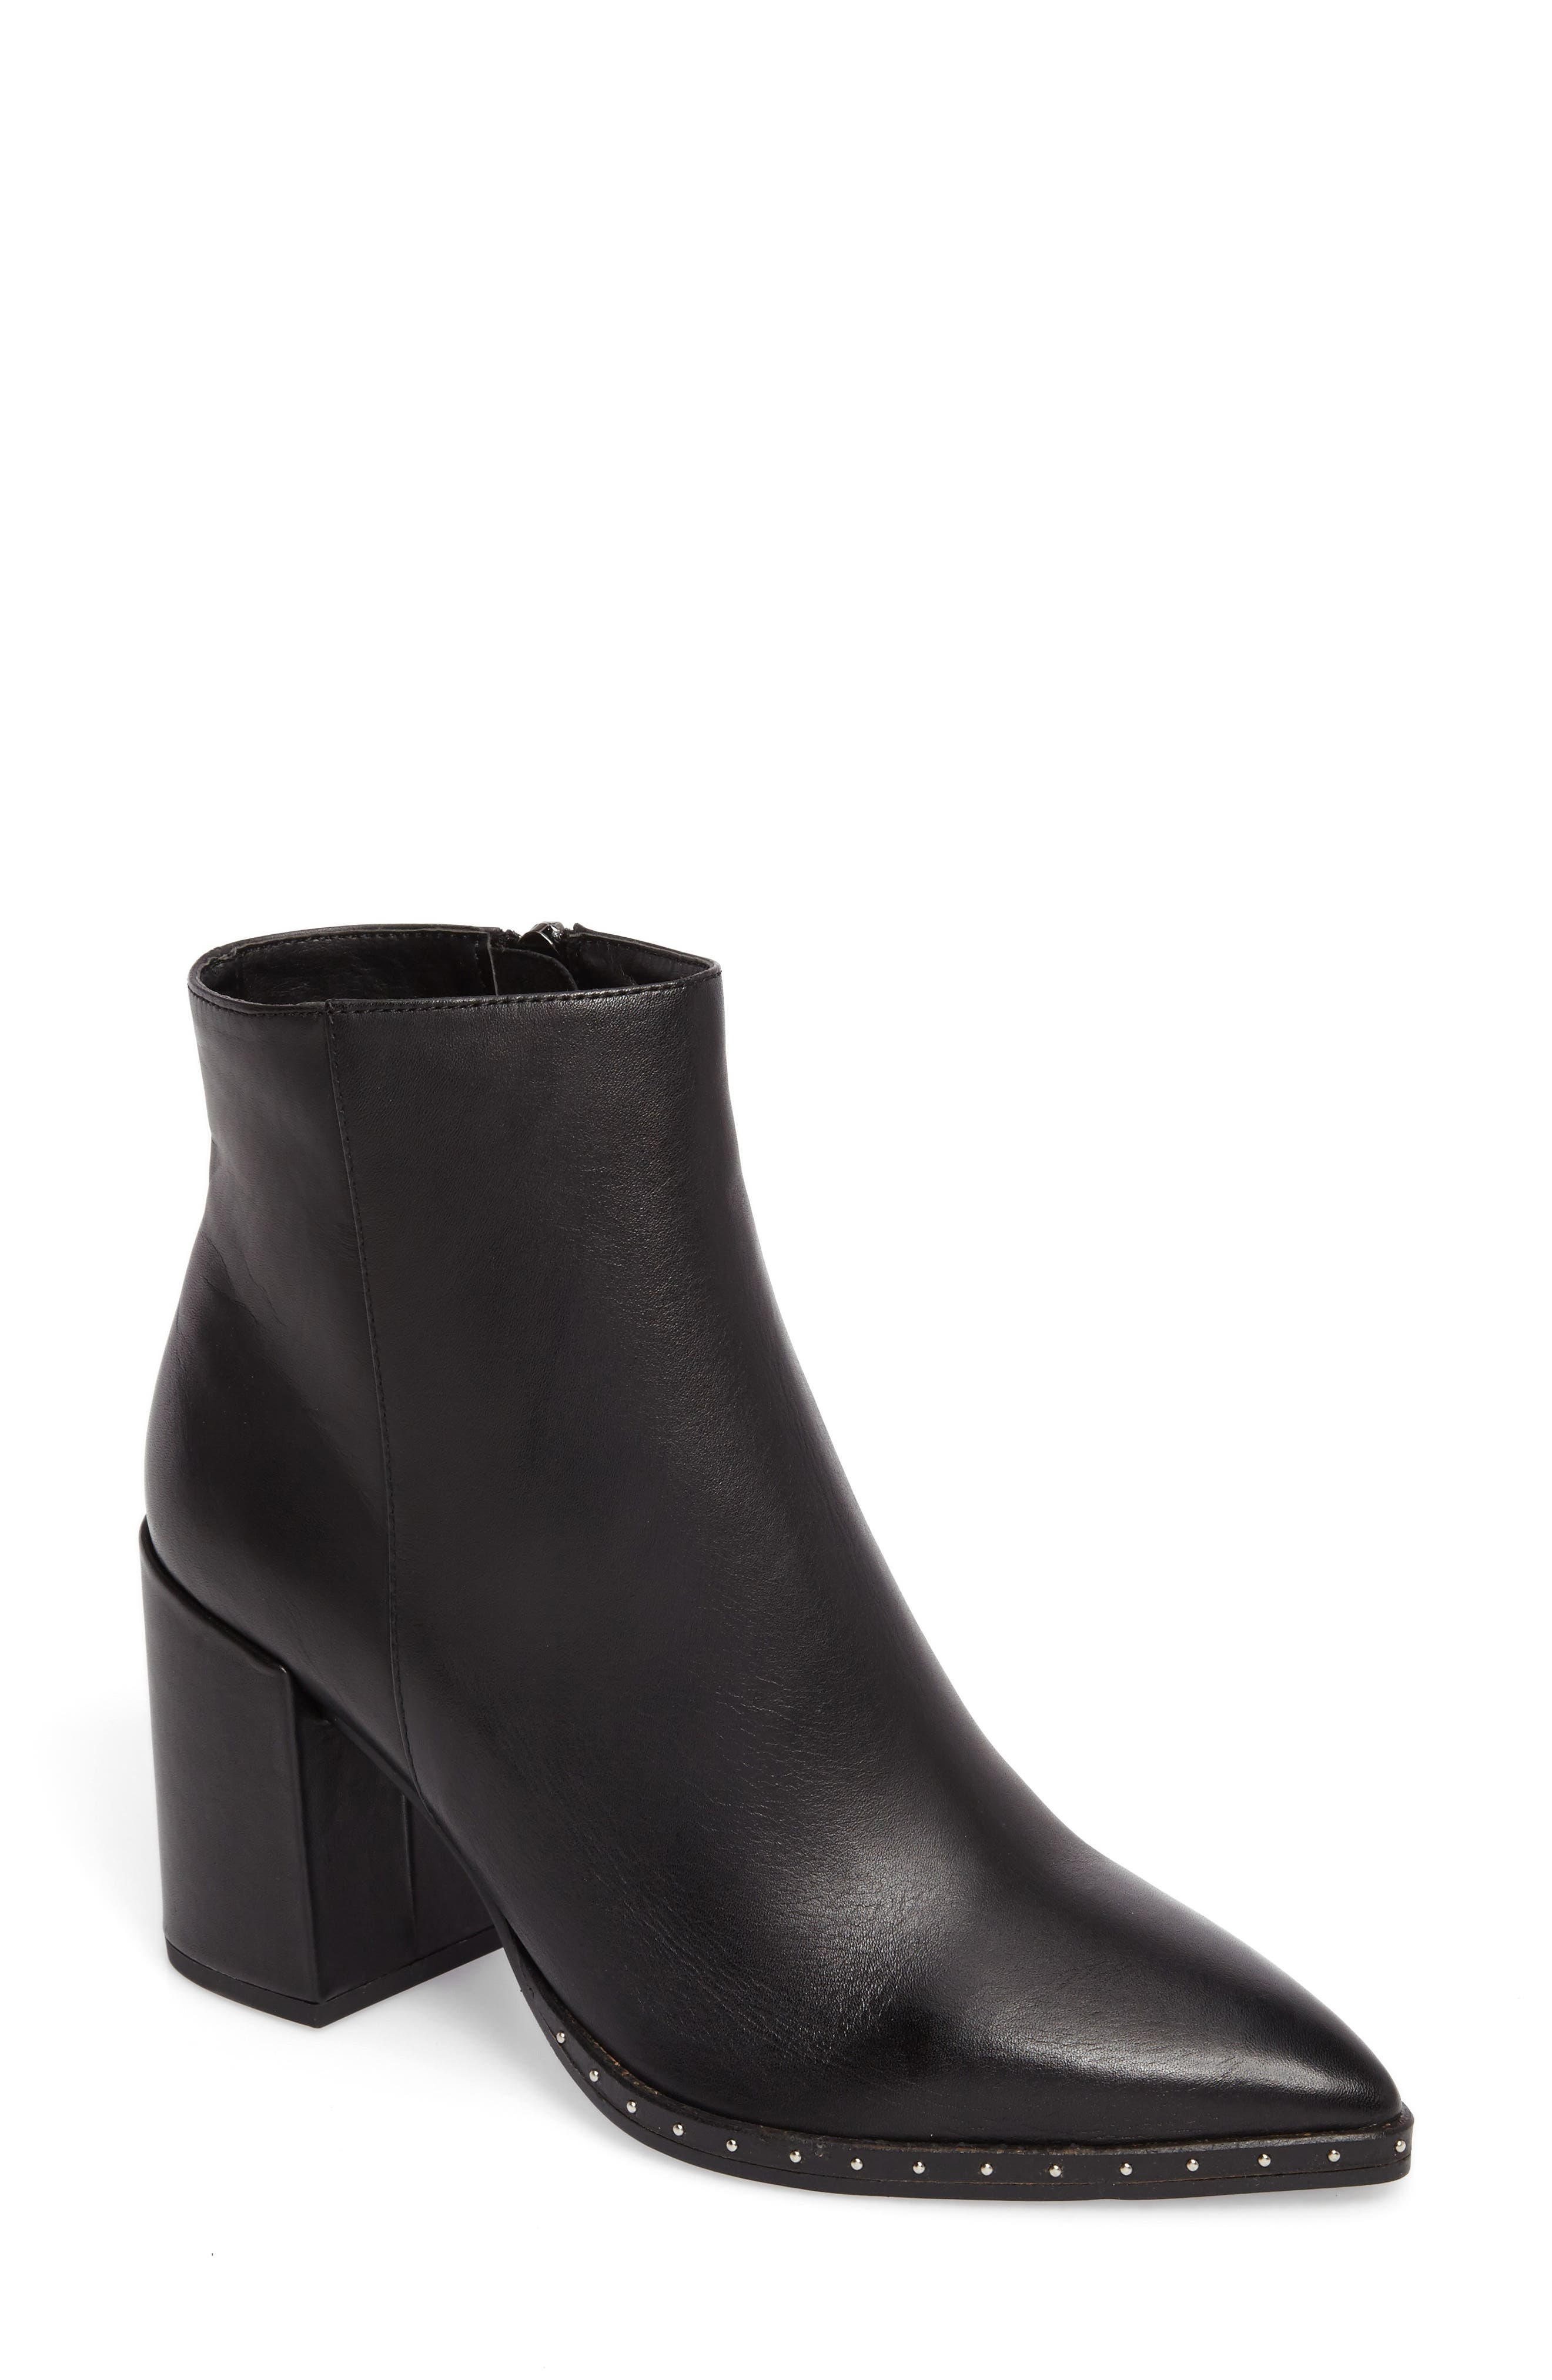 Alternate Image 1 Selected - Tony Bianco Bailey Pointy Toe Bootie (Women)